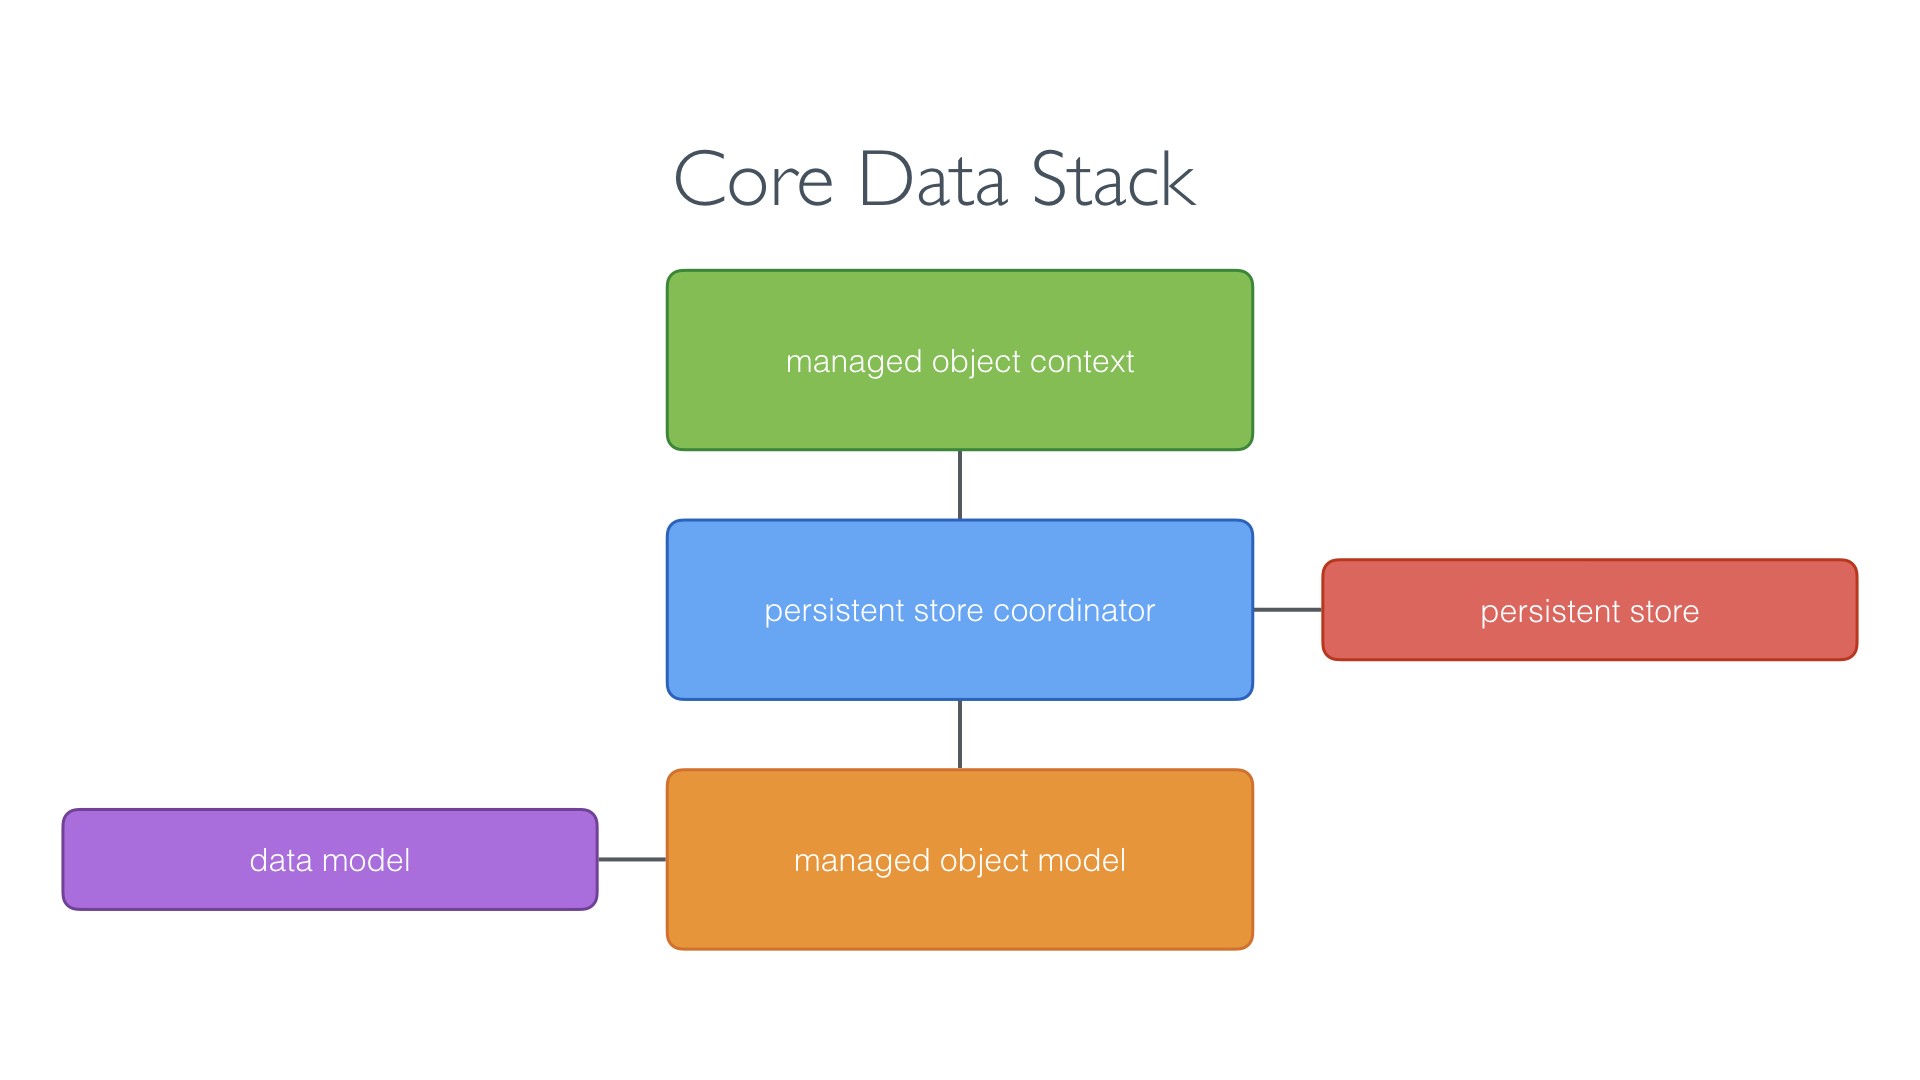 Core Data Stack